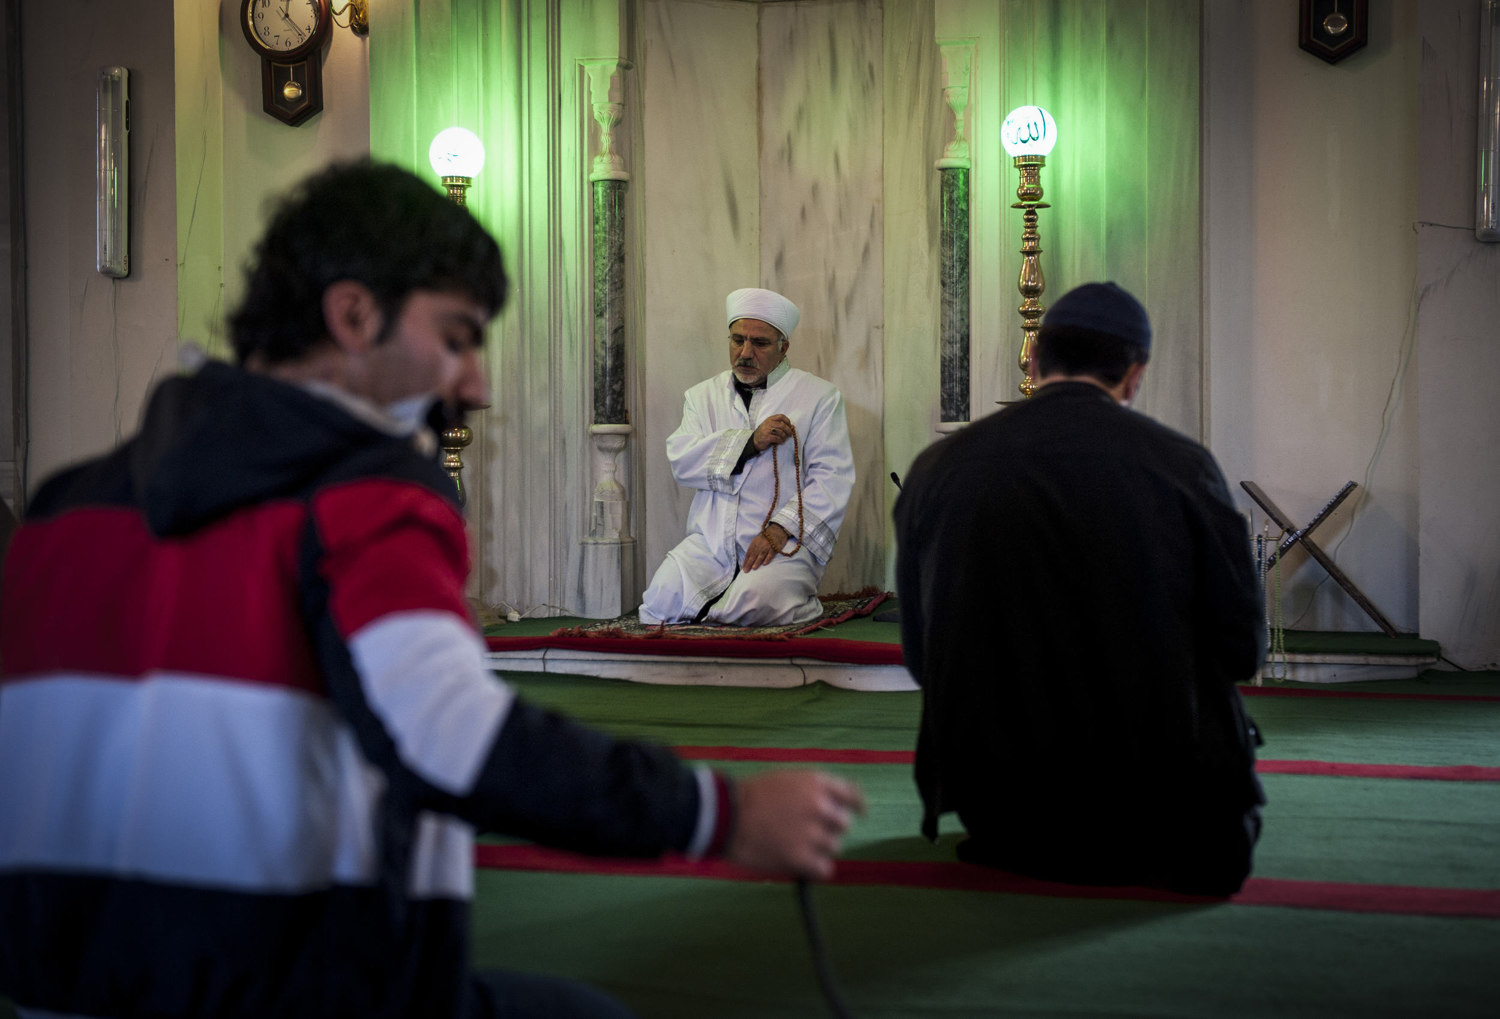 Imam Mehmet Ilhan leads prayer and sings Koranic verses at Ebul Fadil Mehmet Efendi Cami in Cihangir where he has been the Imam for over five years. While Ilhan's mosque broadcasts the Azan though a loudspeaker, many Imam's, including Ilhan find that learning the proper way to sing an Azan is helpful.